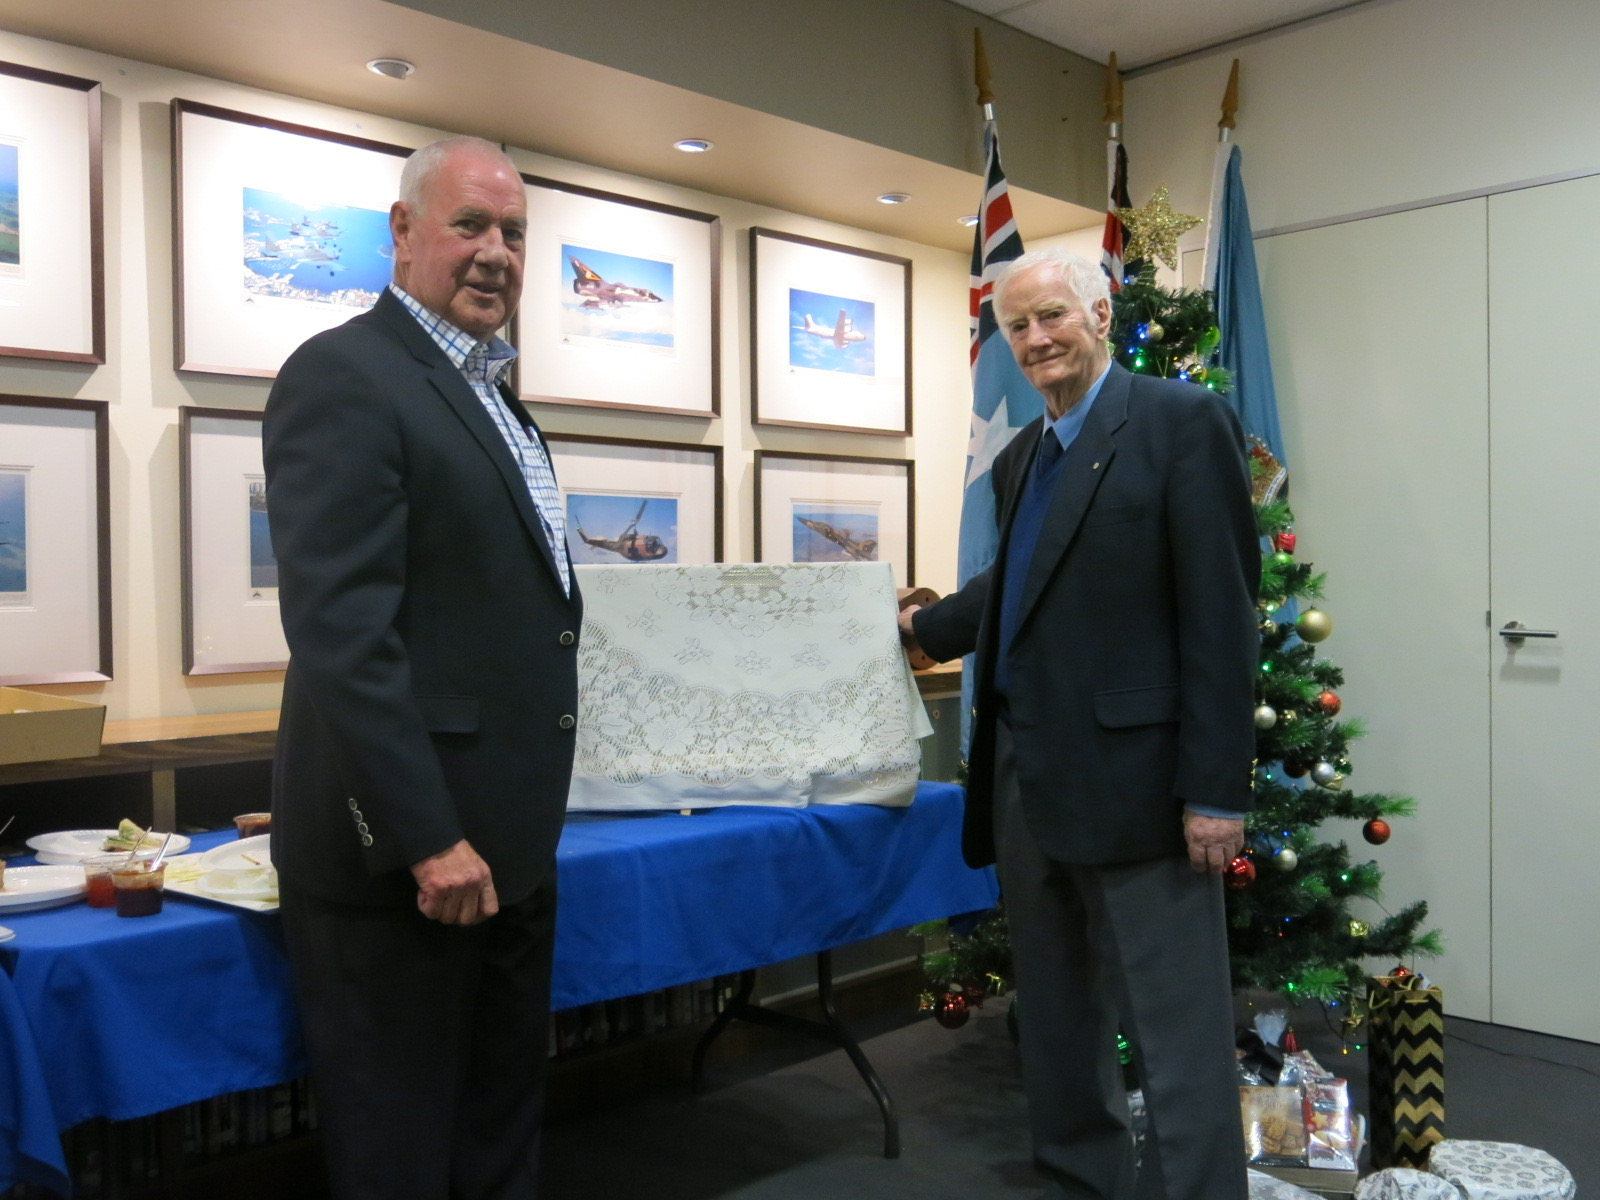 AIR CDRE Ted Bushell (RETD) presents AFA Victoria President Max McGregor with the second Norman Clifford painting of Point Cook.